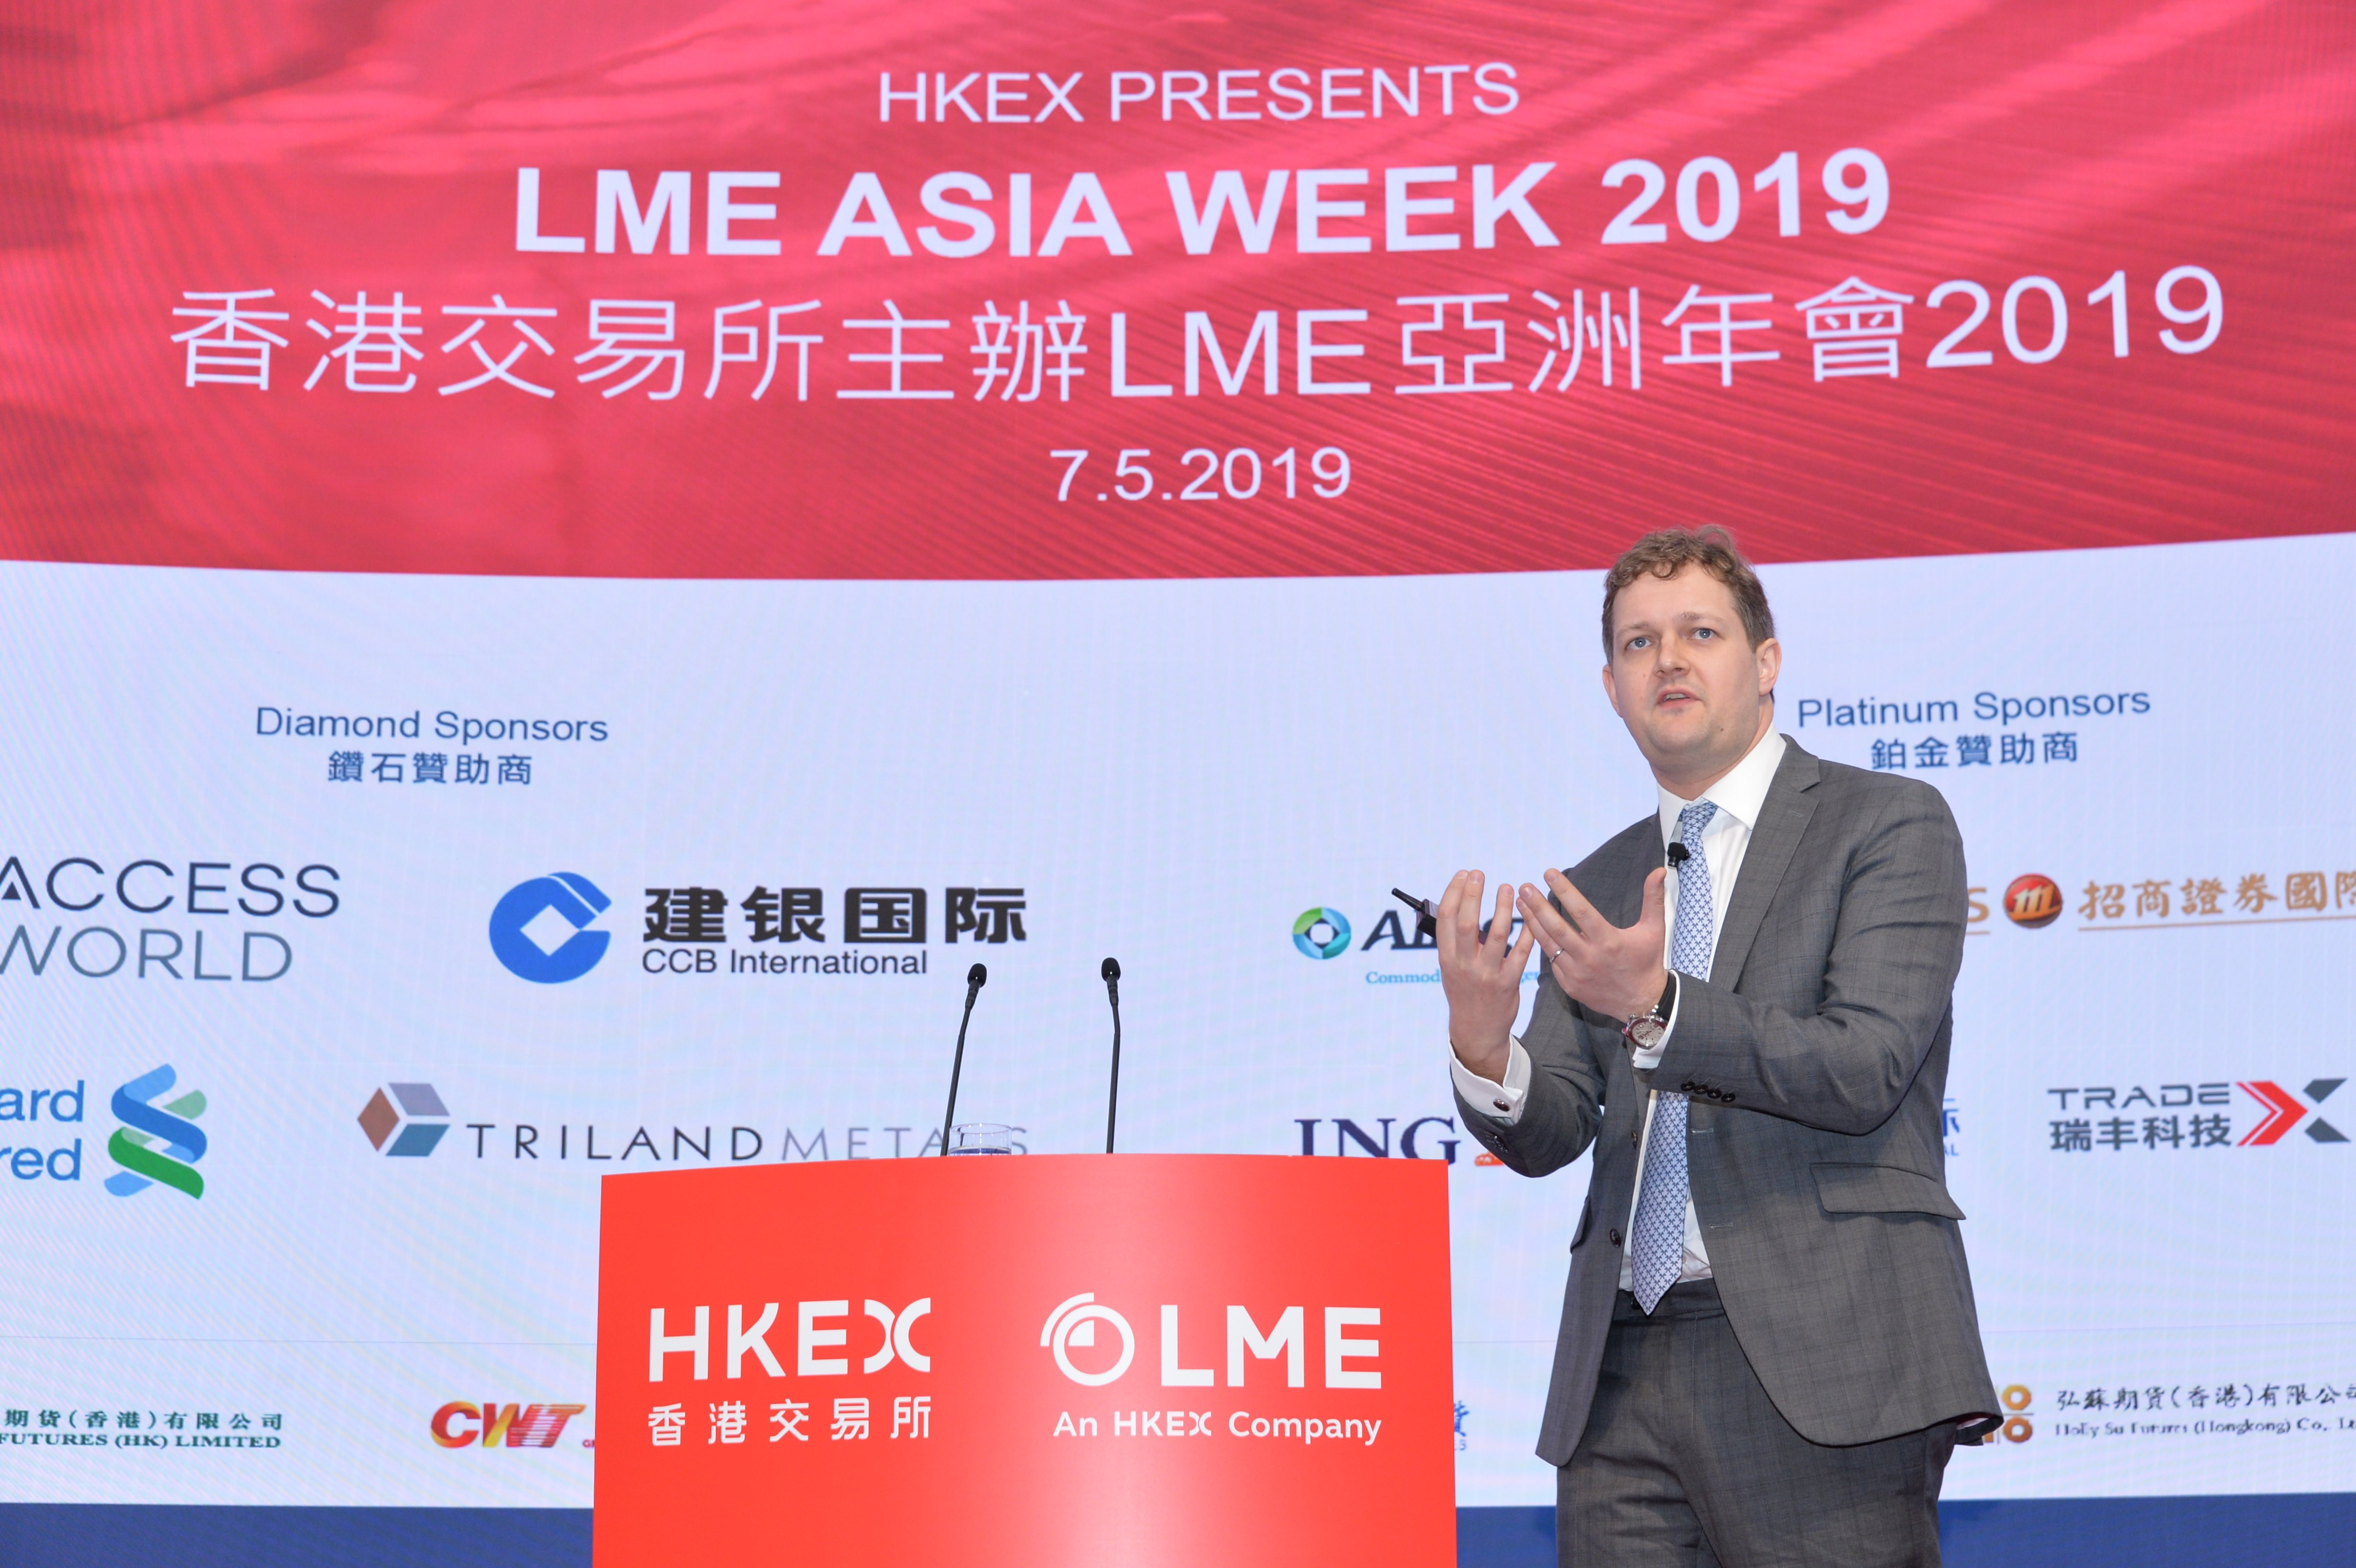 LME Chief Executive Matthew Chamberlain notes the latest development of the LME